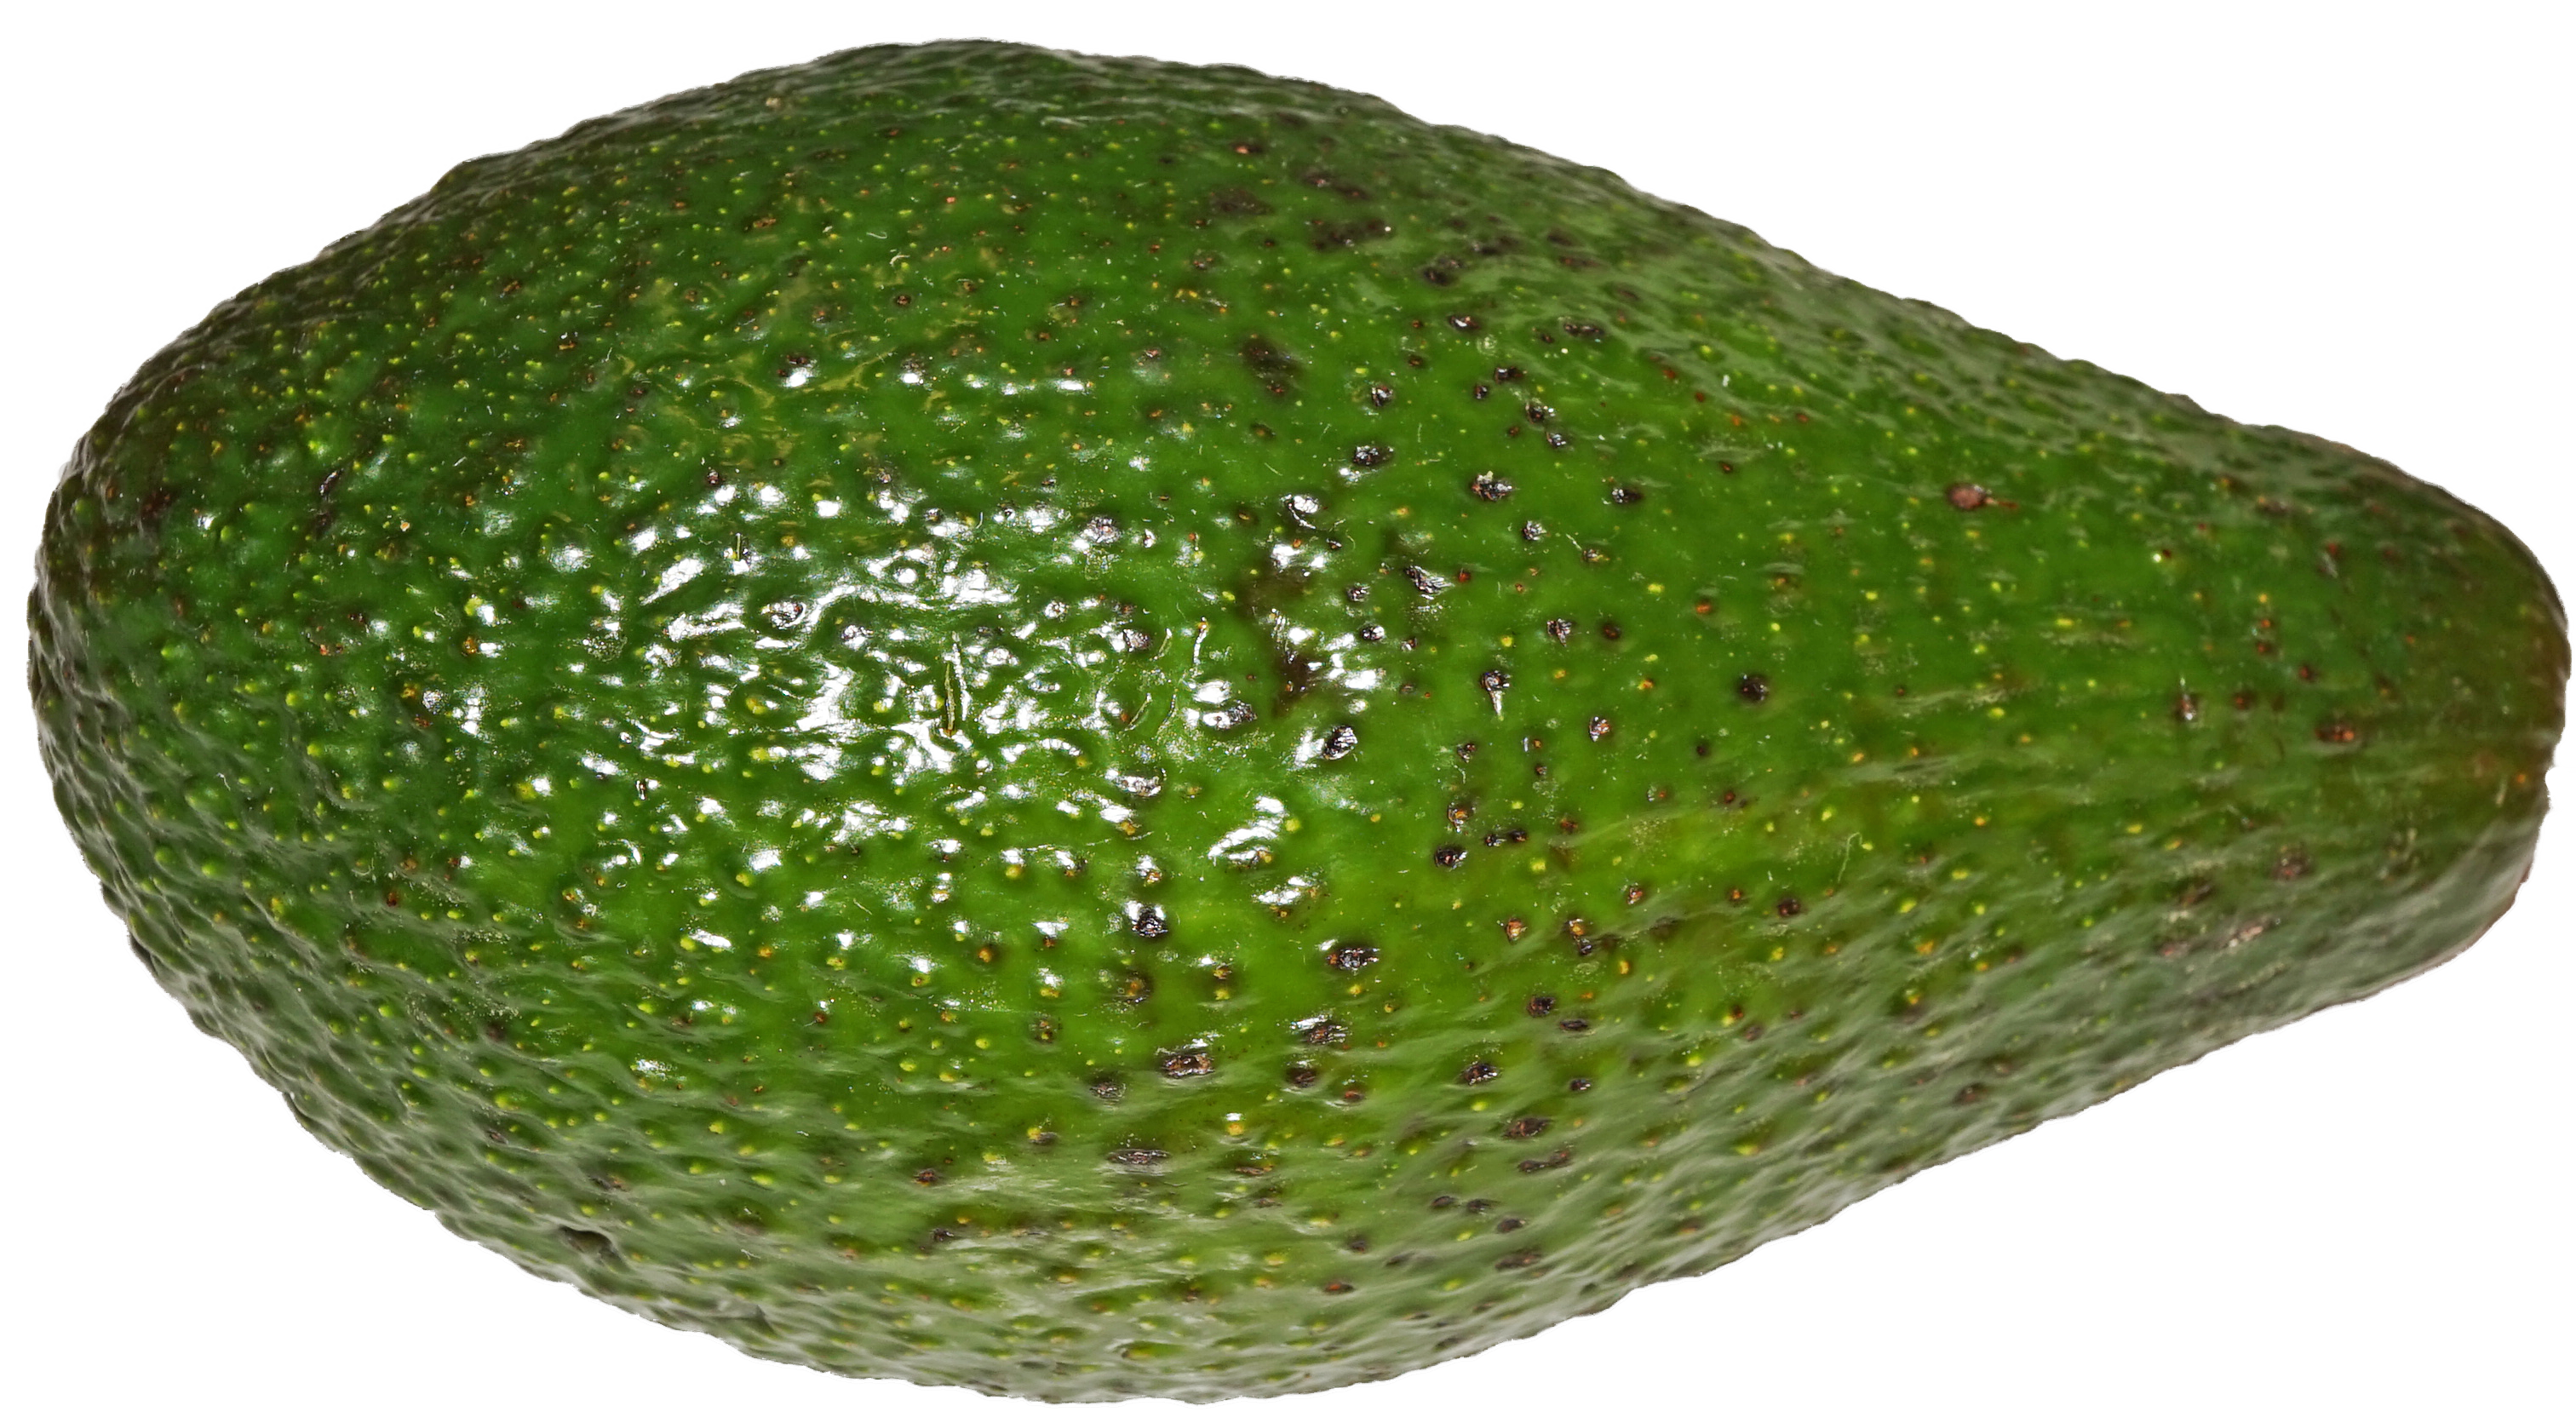 Avocado png. File wikimedia commons fileavocadopng